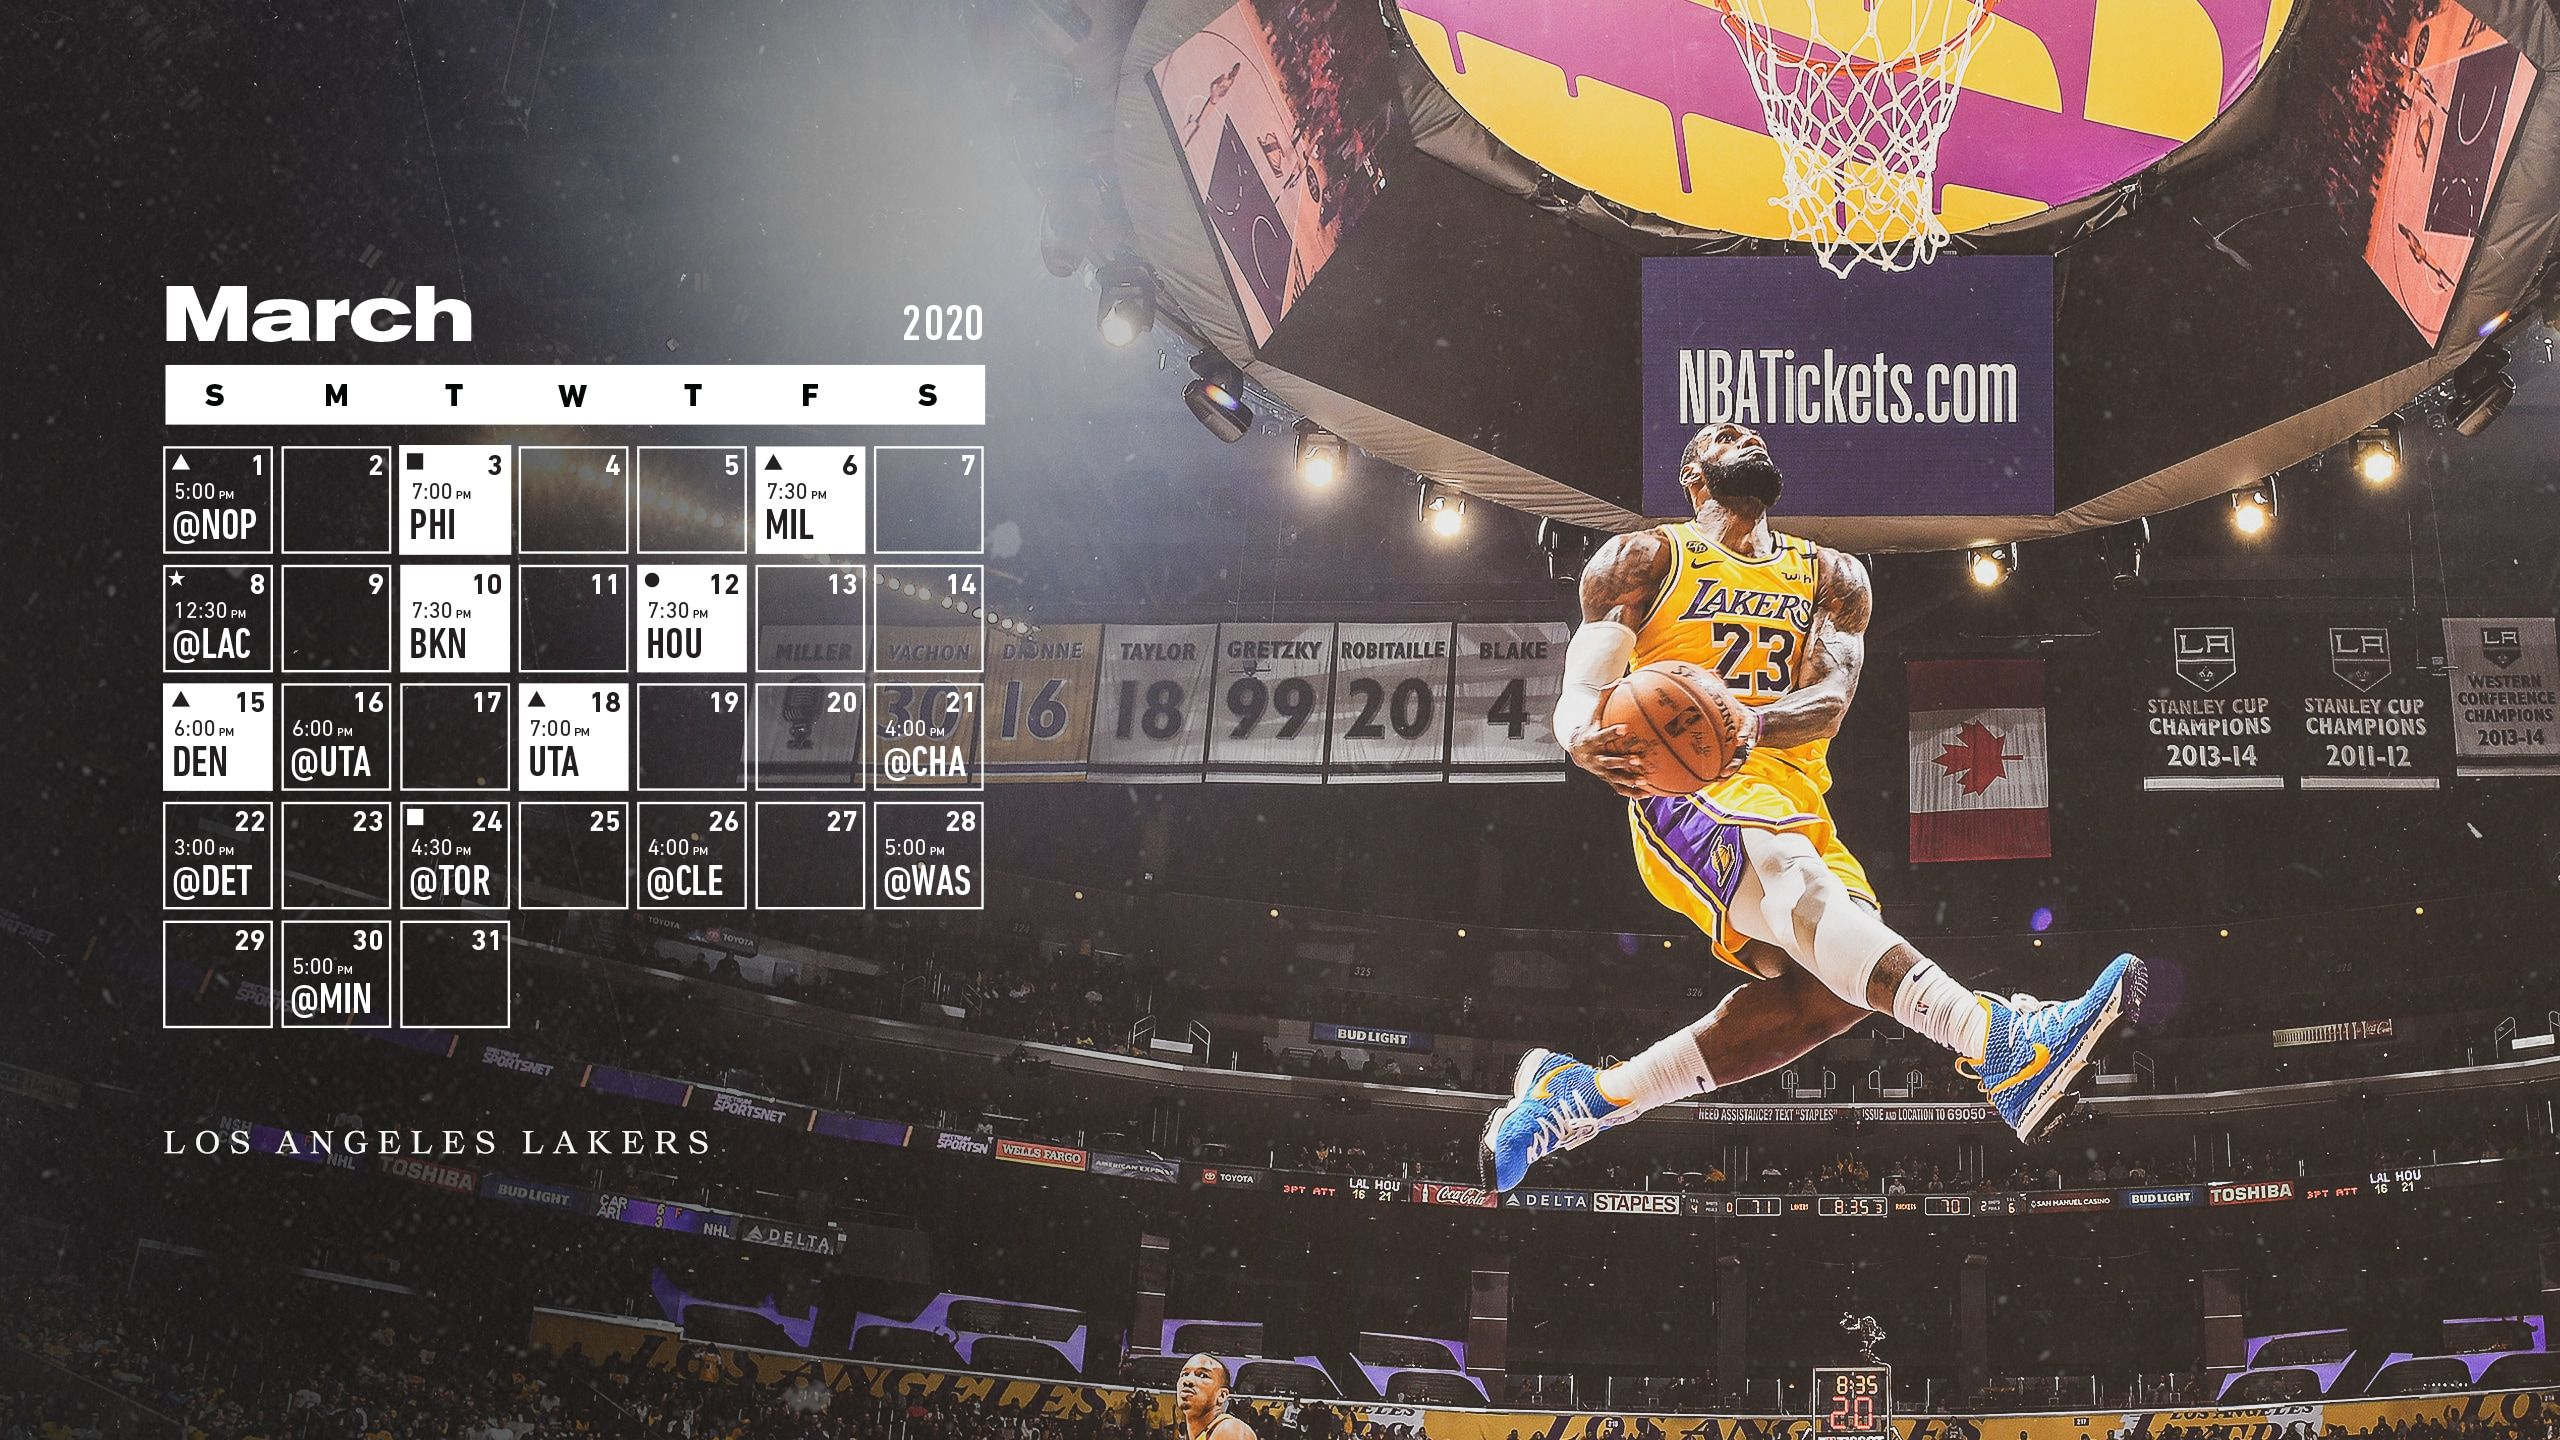 Lakers Wallpapers and Infographics in 2020 Nba